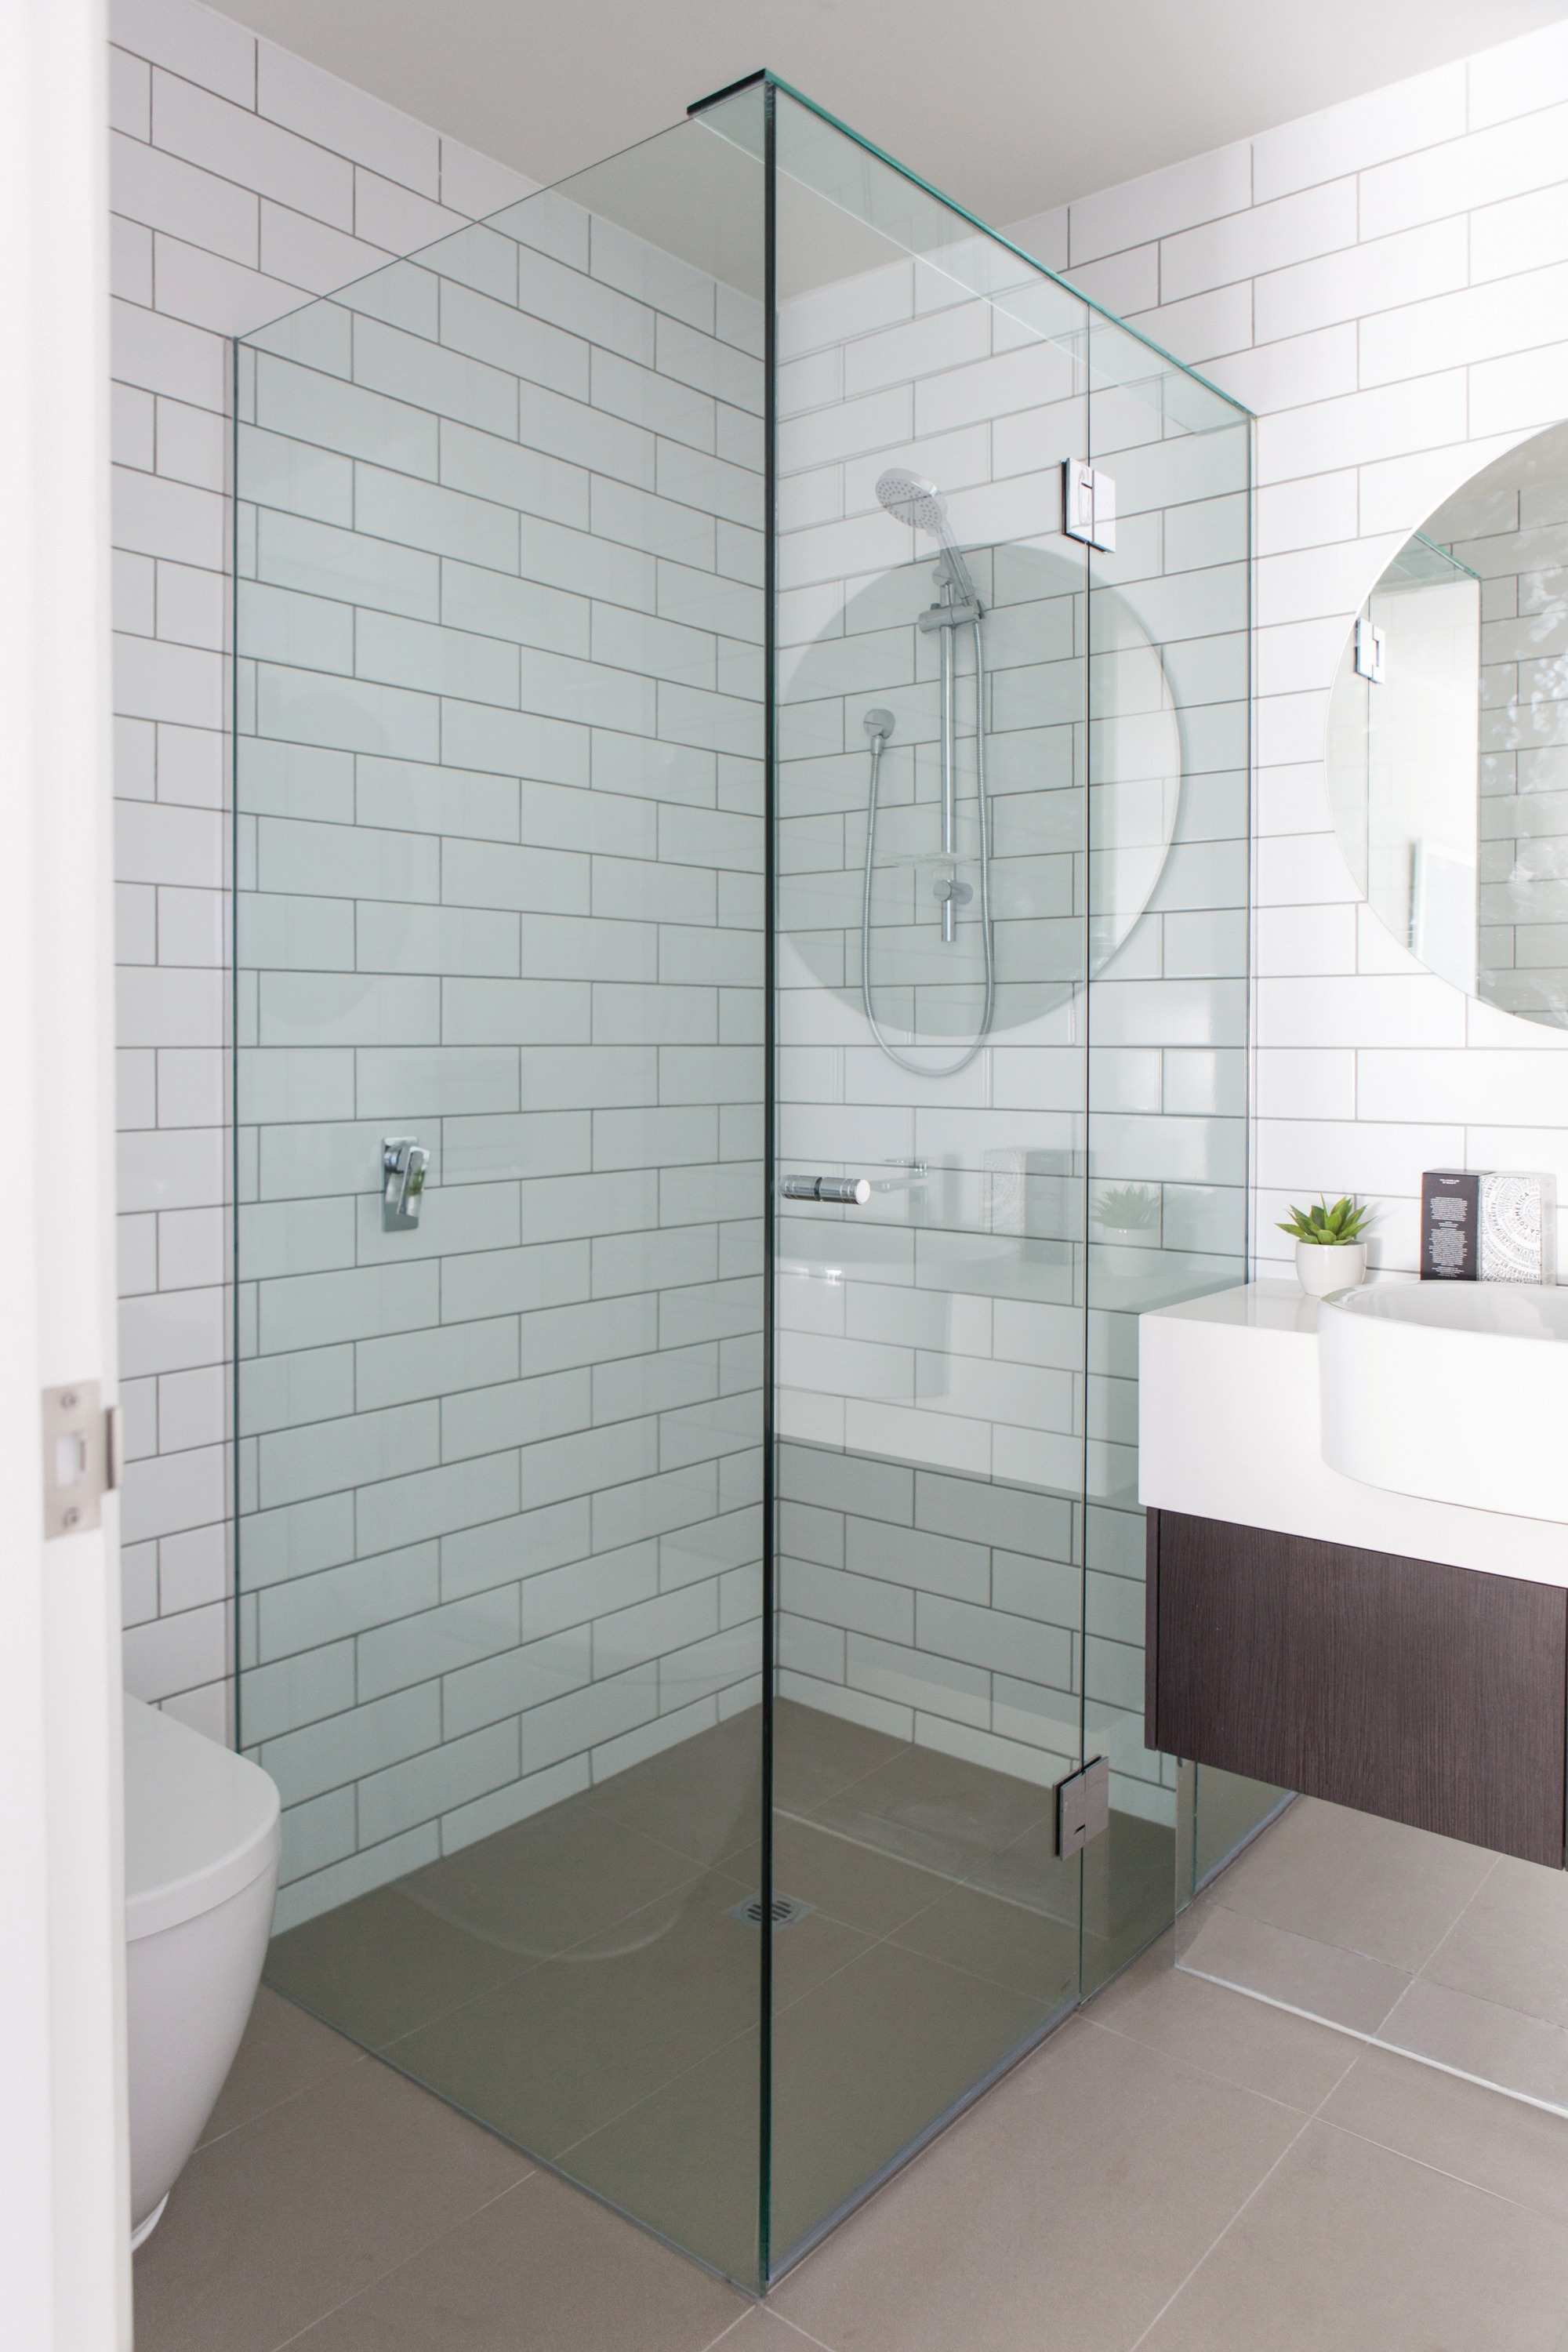 Frameless Standard enclosure 850 x 850 for 900 base - Pipers ...